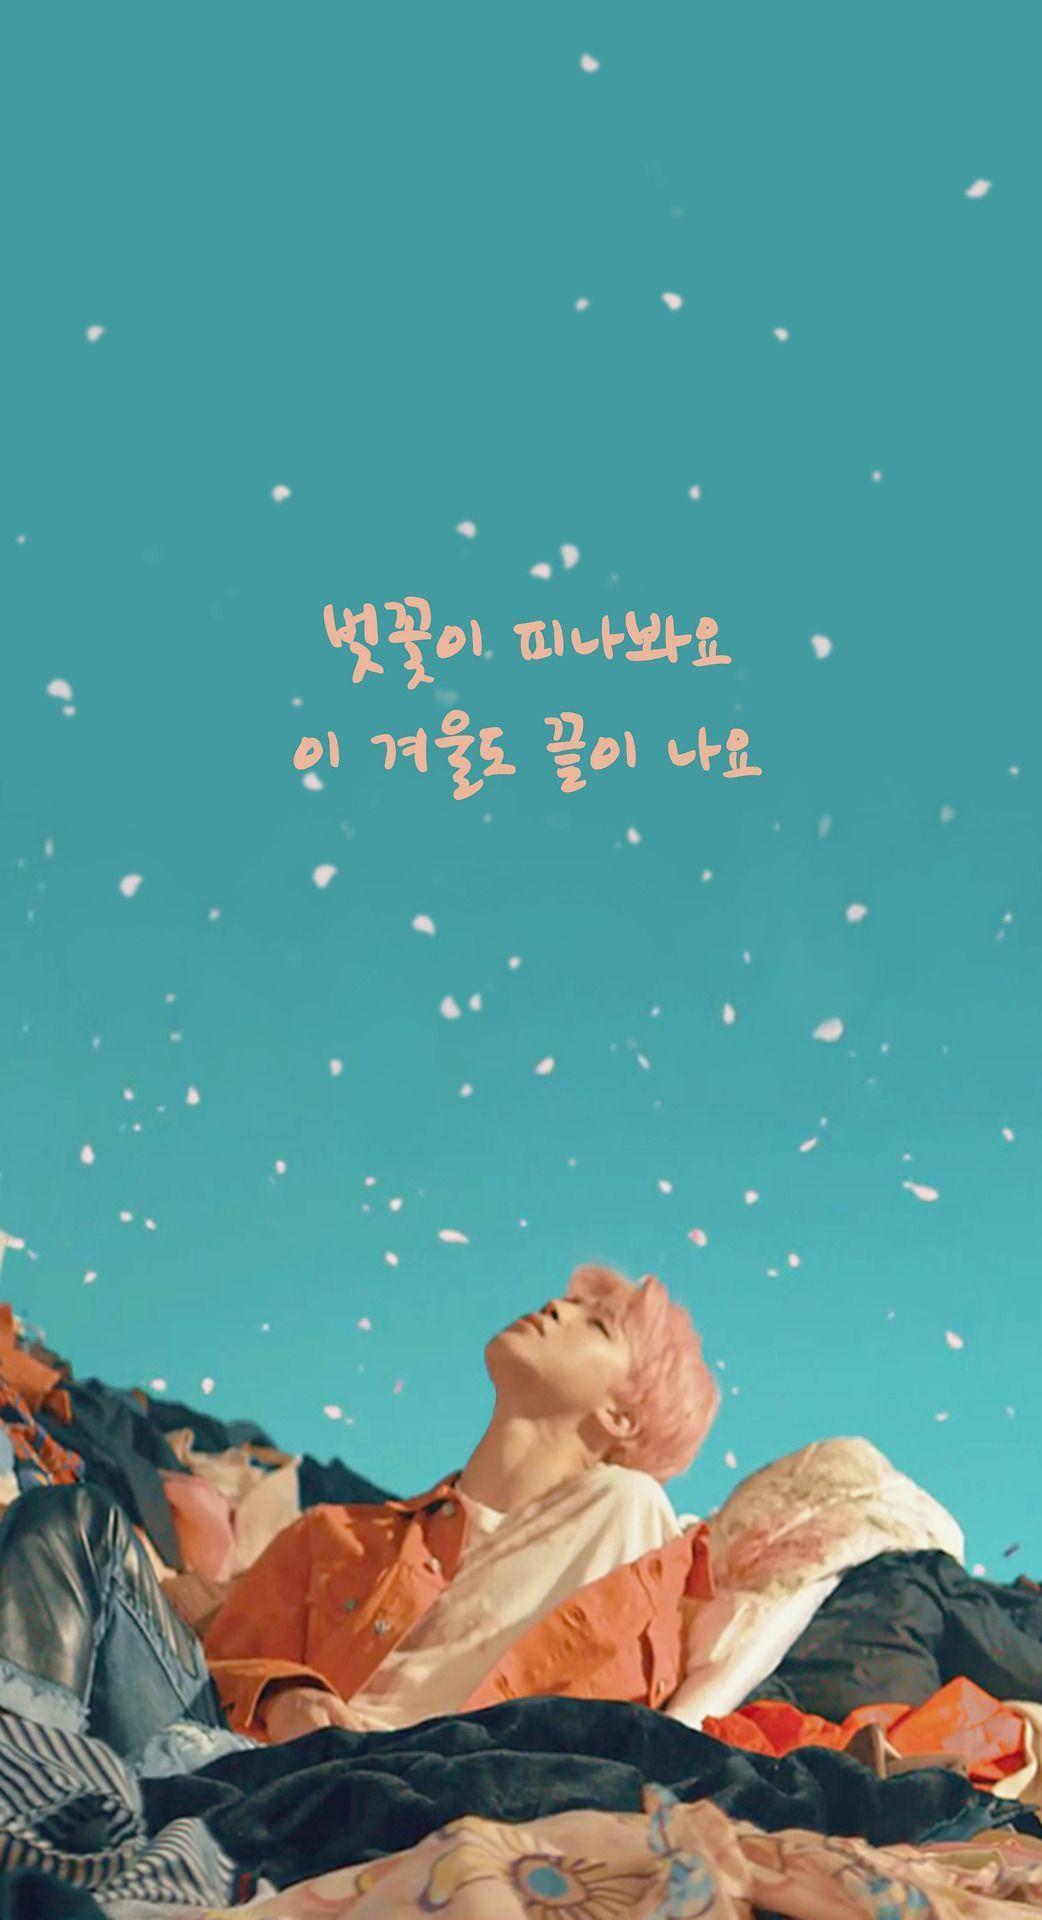 BTS Spring Day Wallpapers - Wallpaper Cave